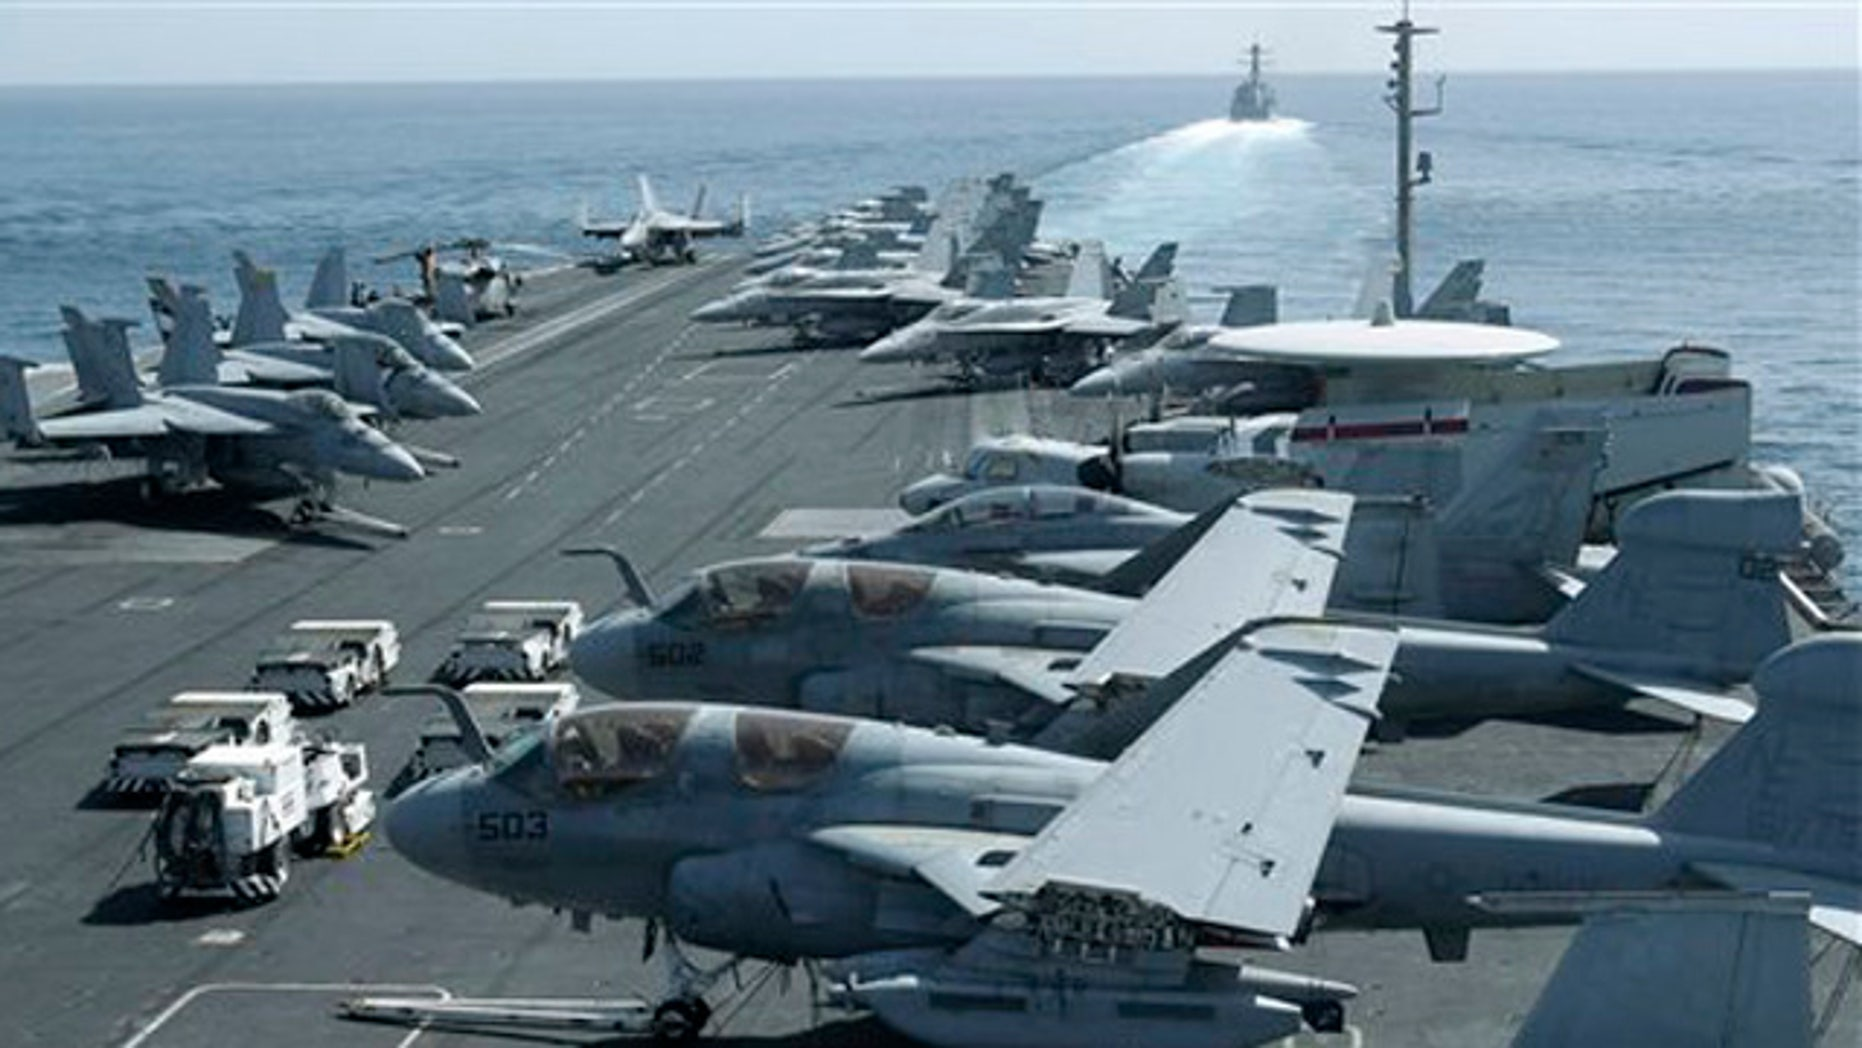 Feb. 14, 2012: A photo taken from the bridge of the Nimitz-class aircraft carrier USS Abraham Lincoln (CVN 72) shows US aircraft parked on the flight deck of a US destroyer, background, patrols the Arabian sea in the Strait of Hormuz.